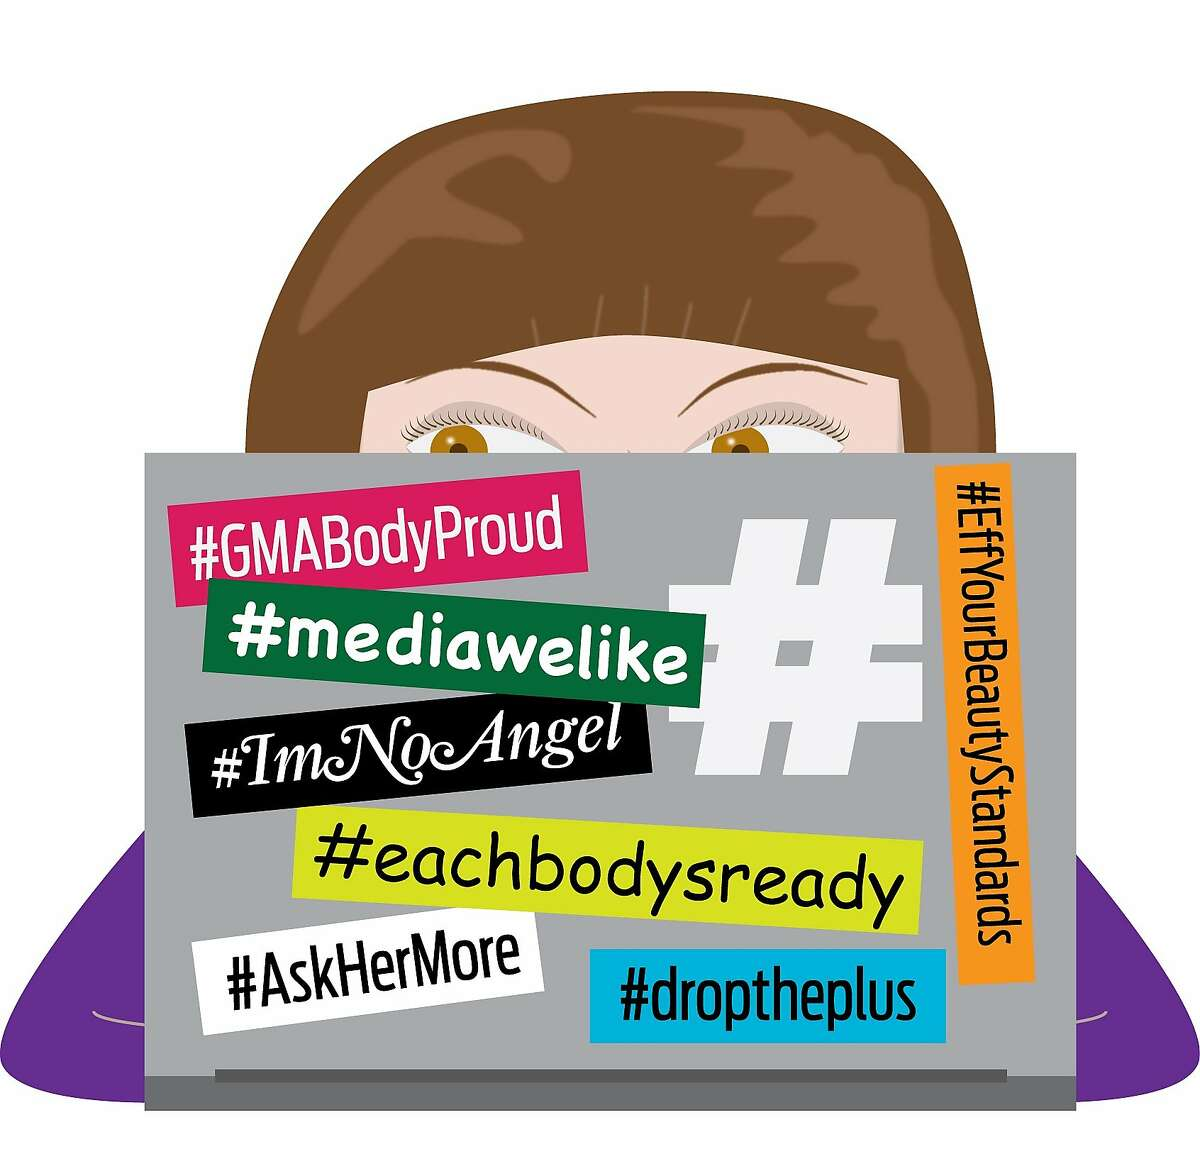 """In light of #ThankYouEllenPao in our own backyard, we can't help but notice a wave of hashtag campaigns that make positive statements for women and counter the notoriously negative nature of social media. Recent ones ask red-carpet arrivals interviewers to #askhermore, encourage modeling agencies to #droptheplus, and boost the self esteem of women with a #speakbeautiful ad campaign. Call it the (feminist) bumper sticker of the """"me"""" generation -- and the backlash against pseudo-natural #wokeuplikethis posts. Sources: Twitter/Dove (#speakbeautiful), Jennifer Newsom (The Representation Project), Kate Upton (model who got famous via social media and has now spoken out against it), and Ajay Rochester (who created #DropthePlus)."""